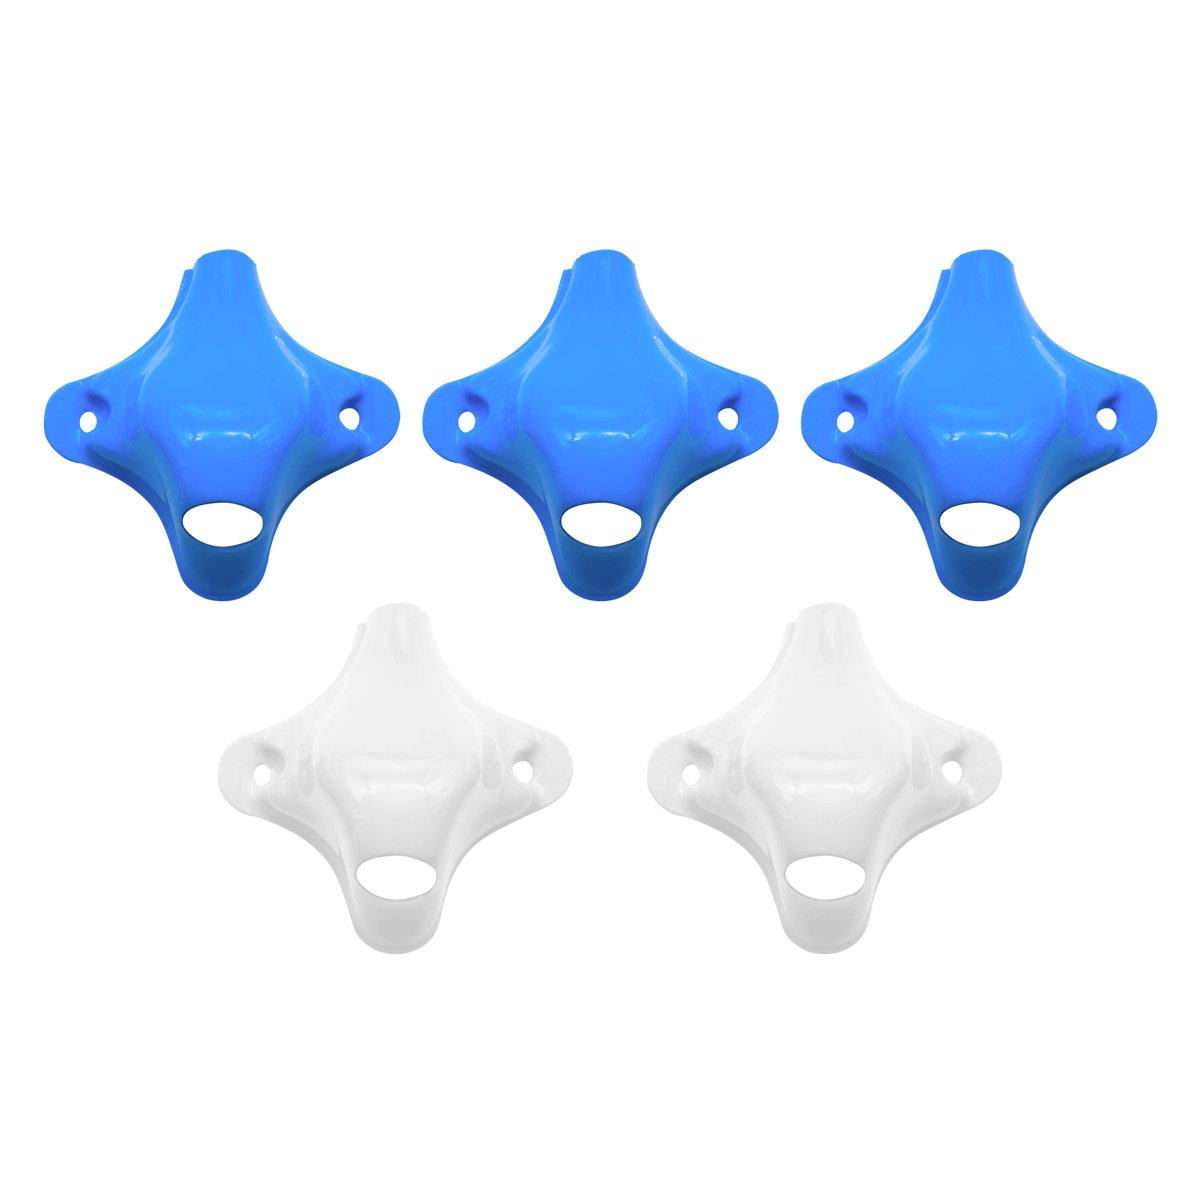 BETAFPV 5pcs Tiny Whoop Plastic Canopy Blue and Transpartent for FPV Tiny Whoop Frame